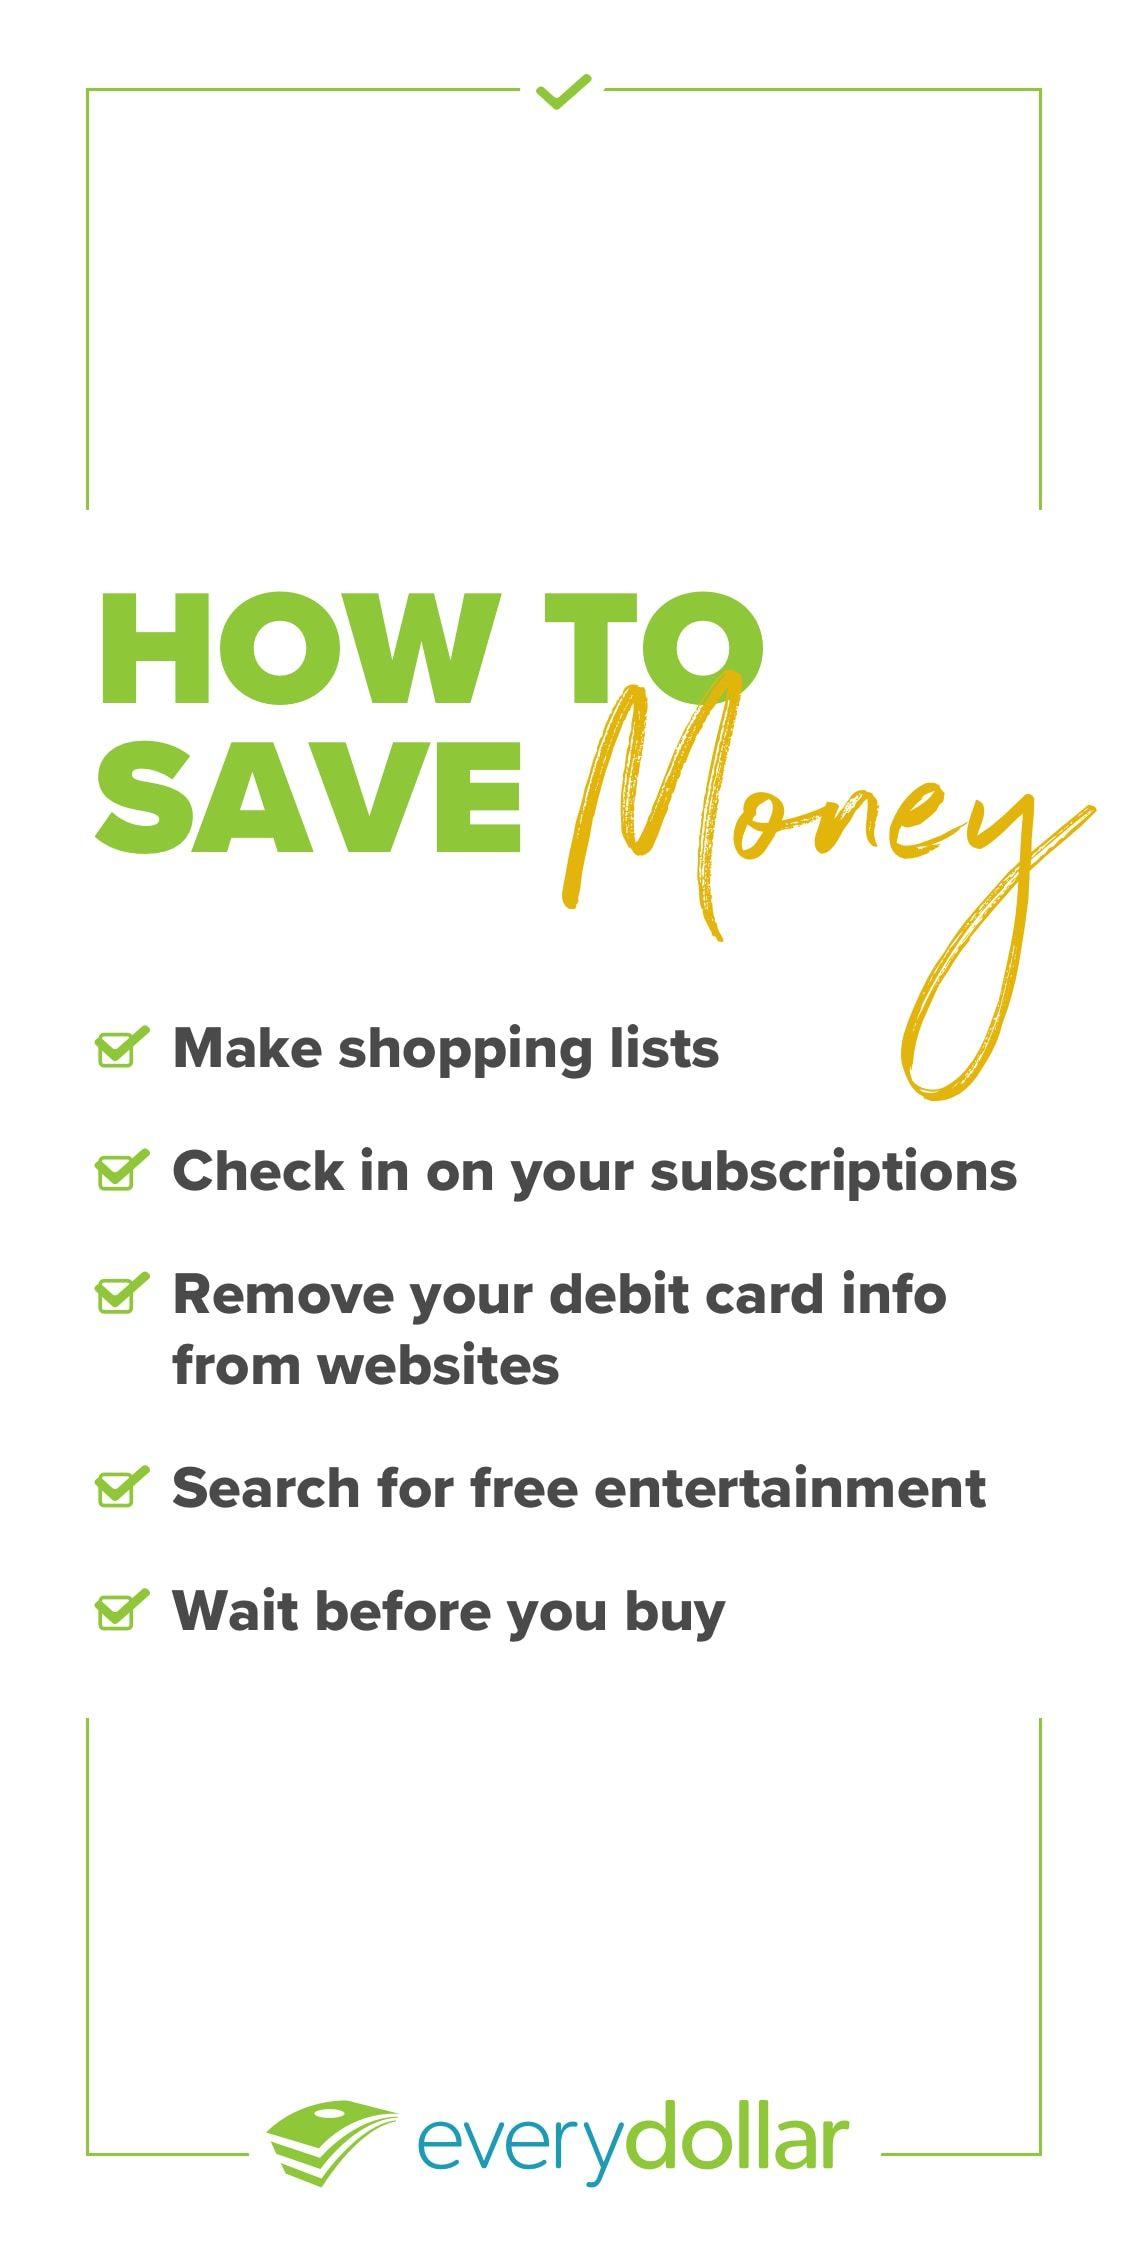 bca850a2a How to Save Money: 20 Simple Tips